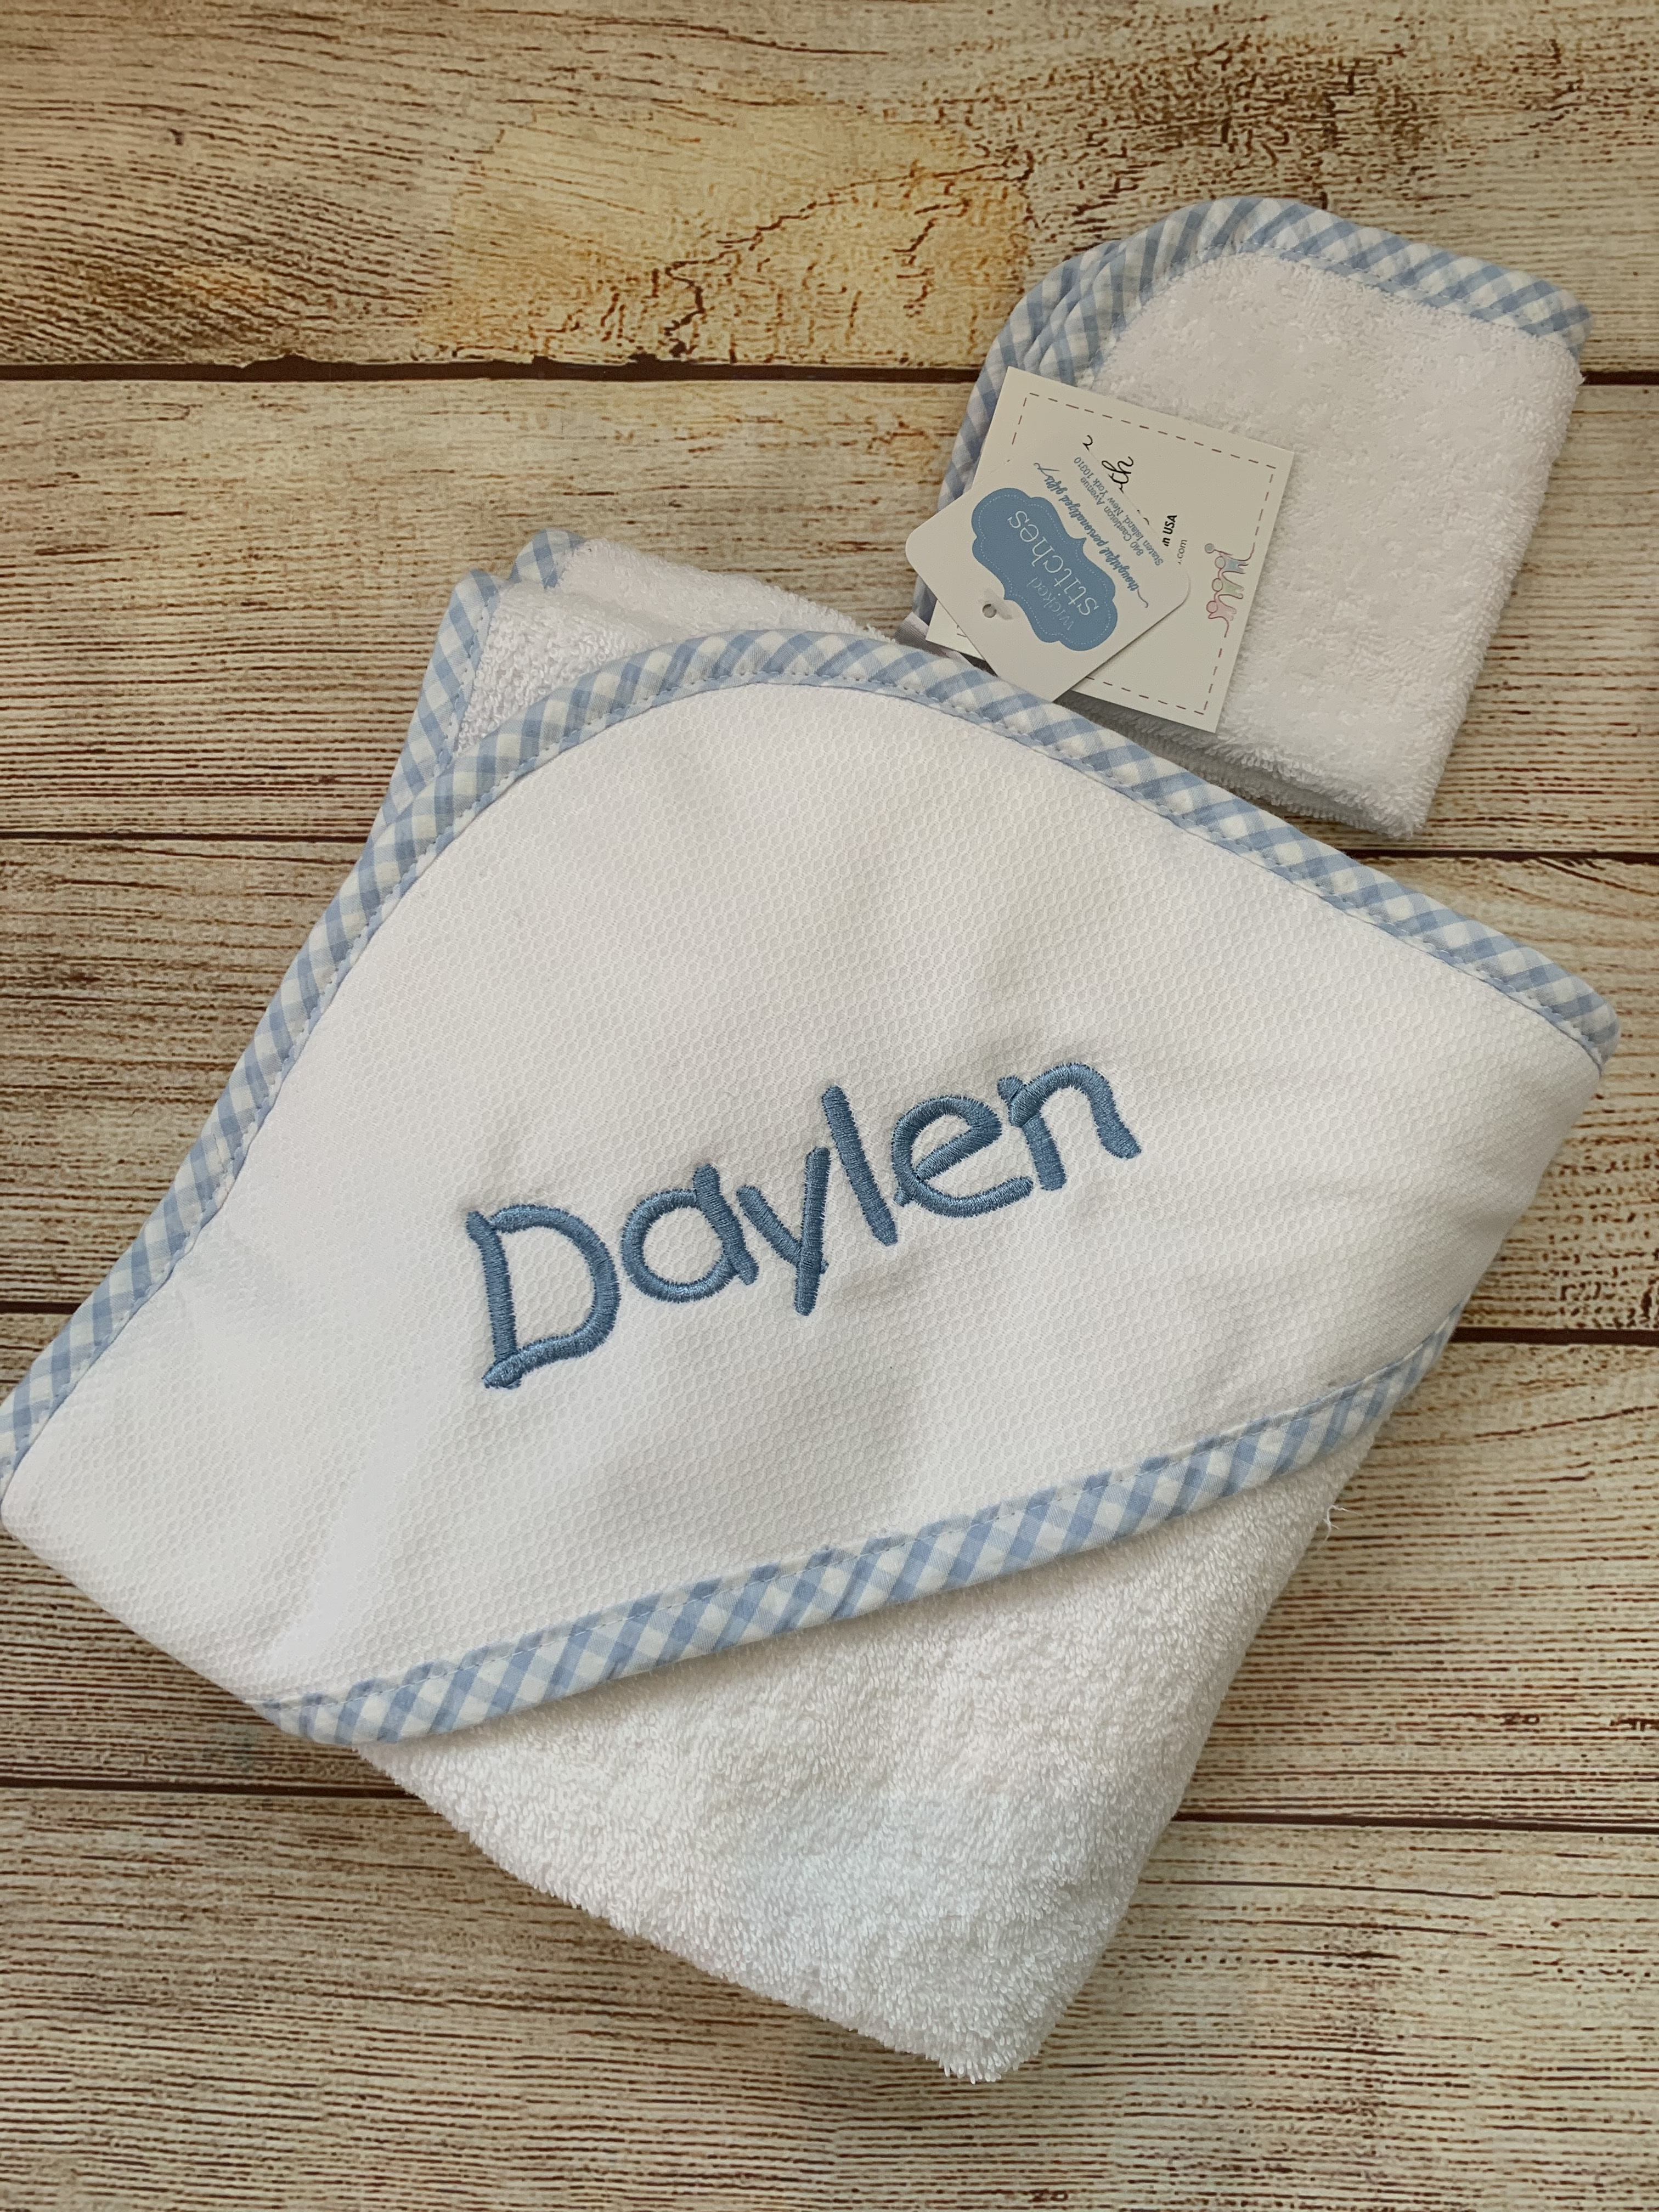 Baby Hooded Towel and Wash Cloth by Wicked Stitches Gifts.